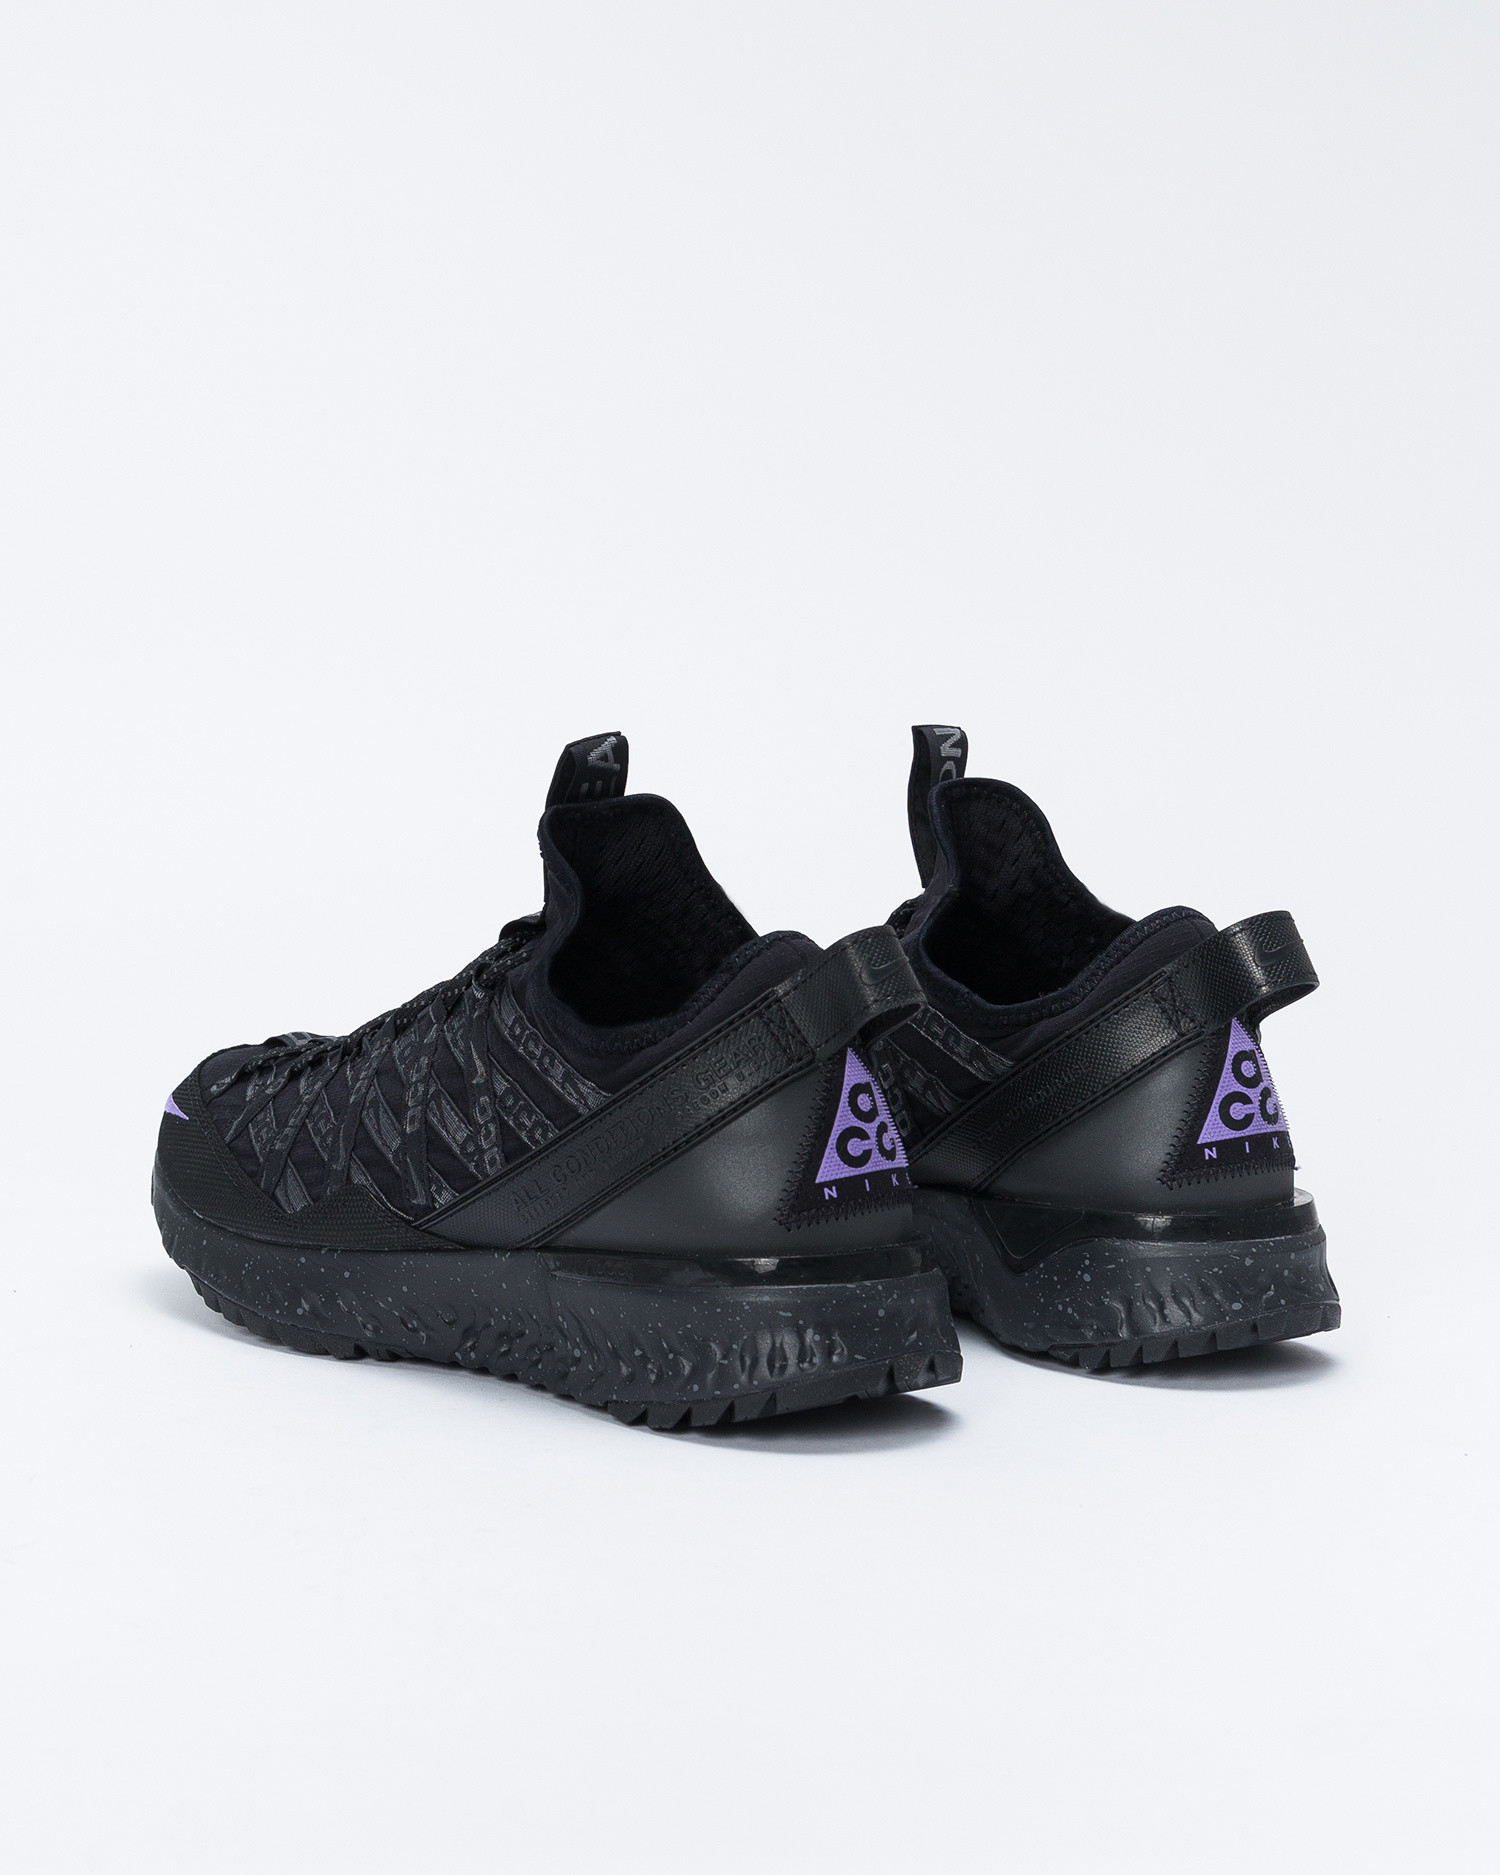 Nike ACG React Terra black/space purple-anthracite